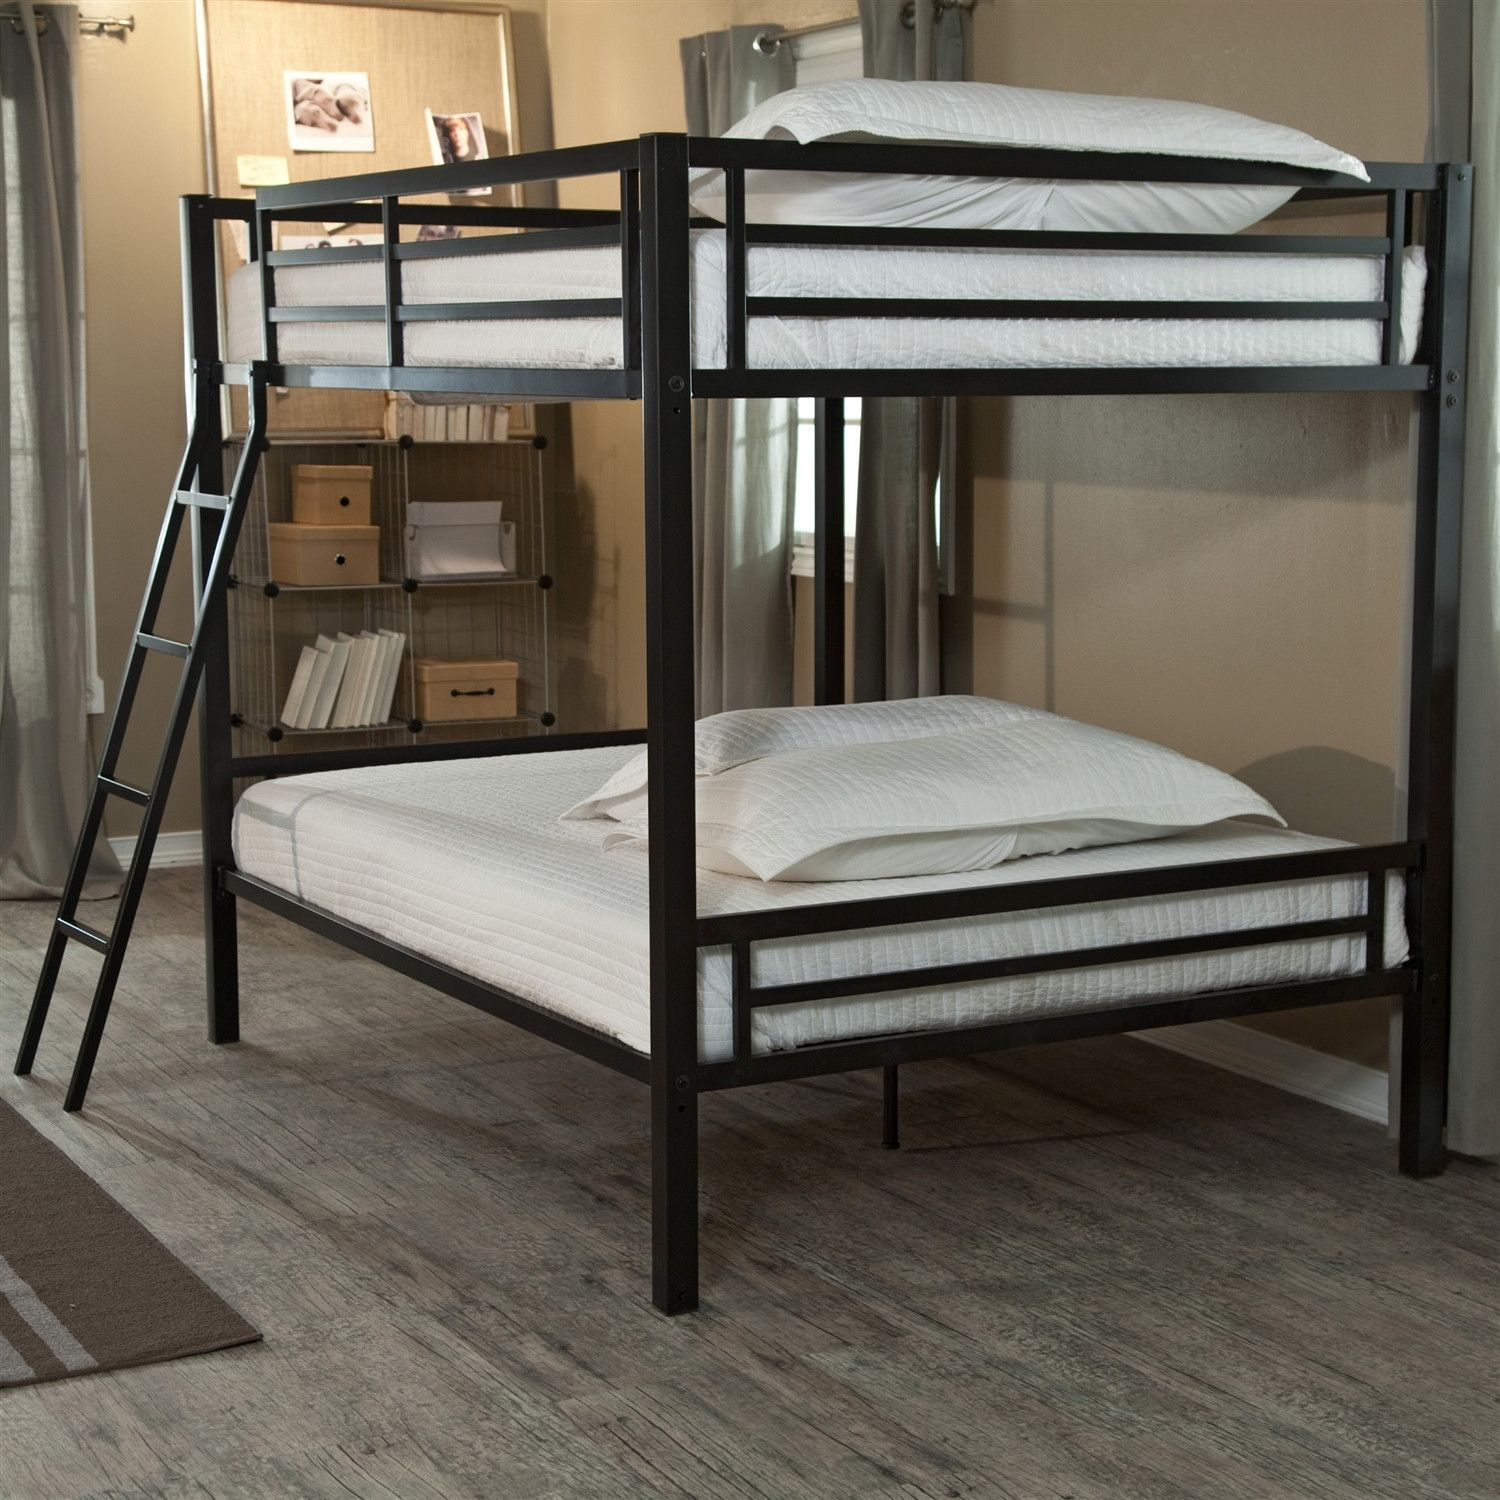 Full over Full Bunk Bed with Ladder and Safety Rails in